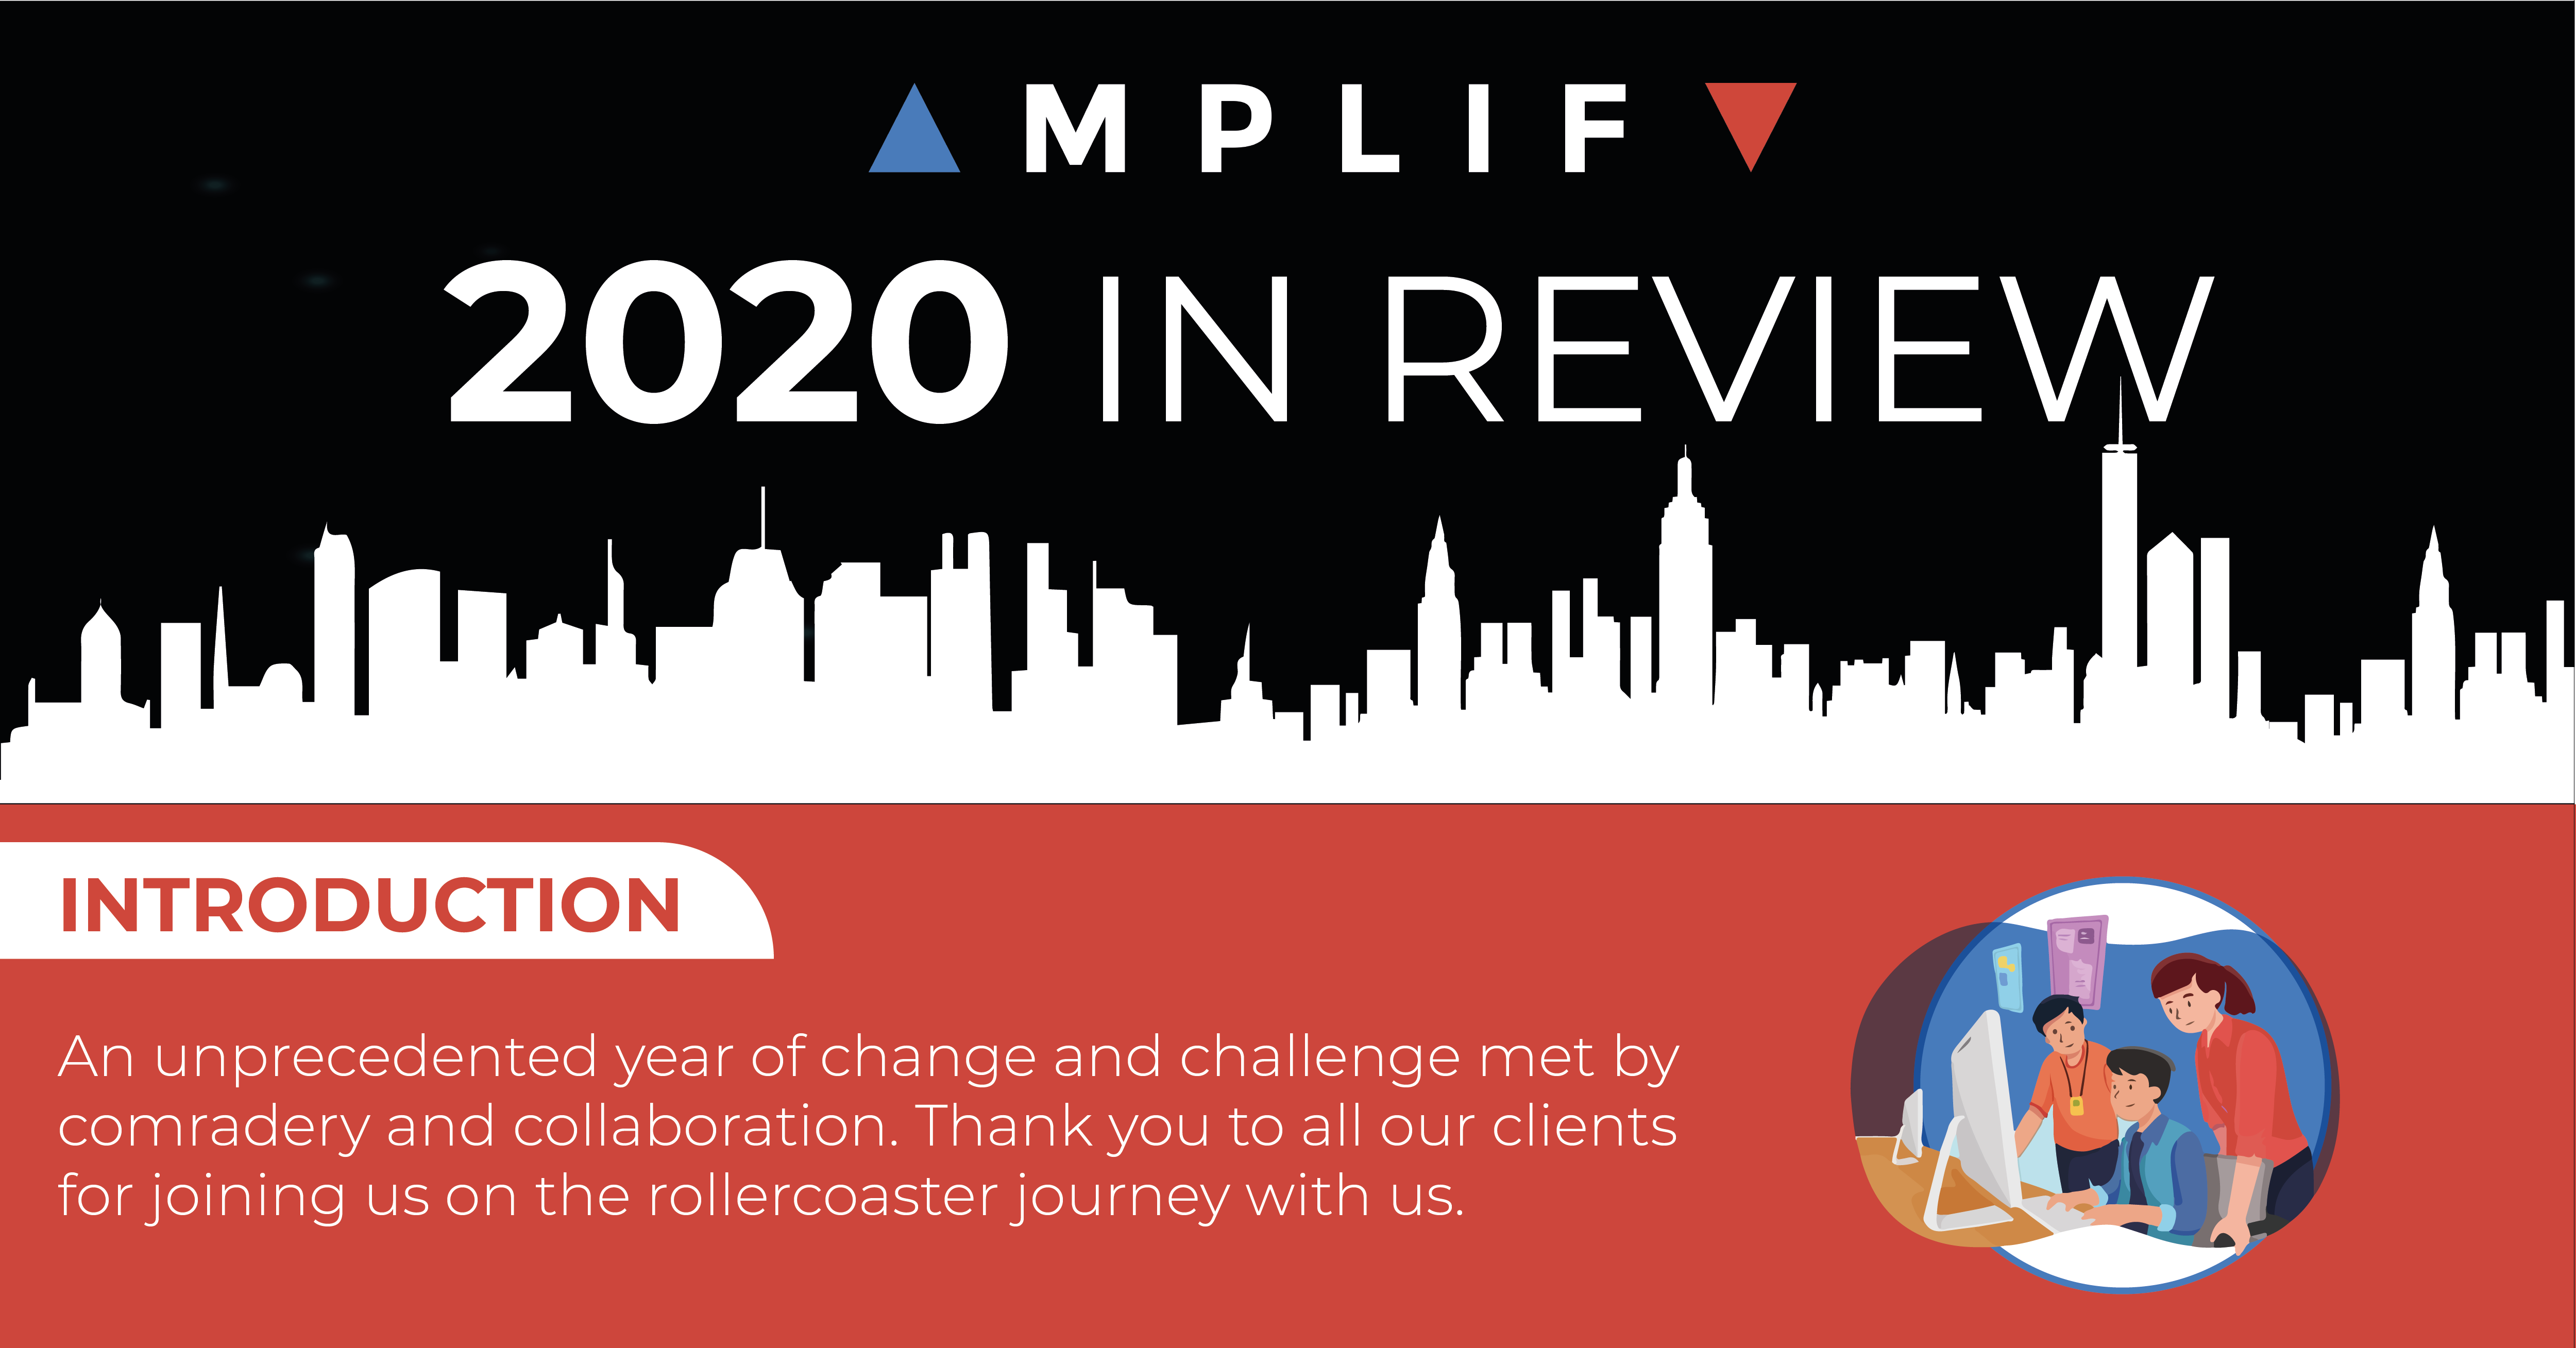 2020 Review And What To Expect From 2021